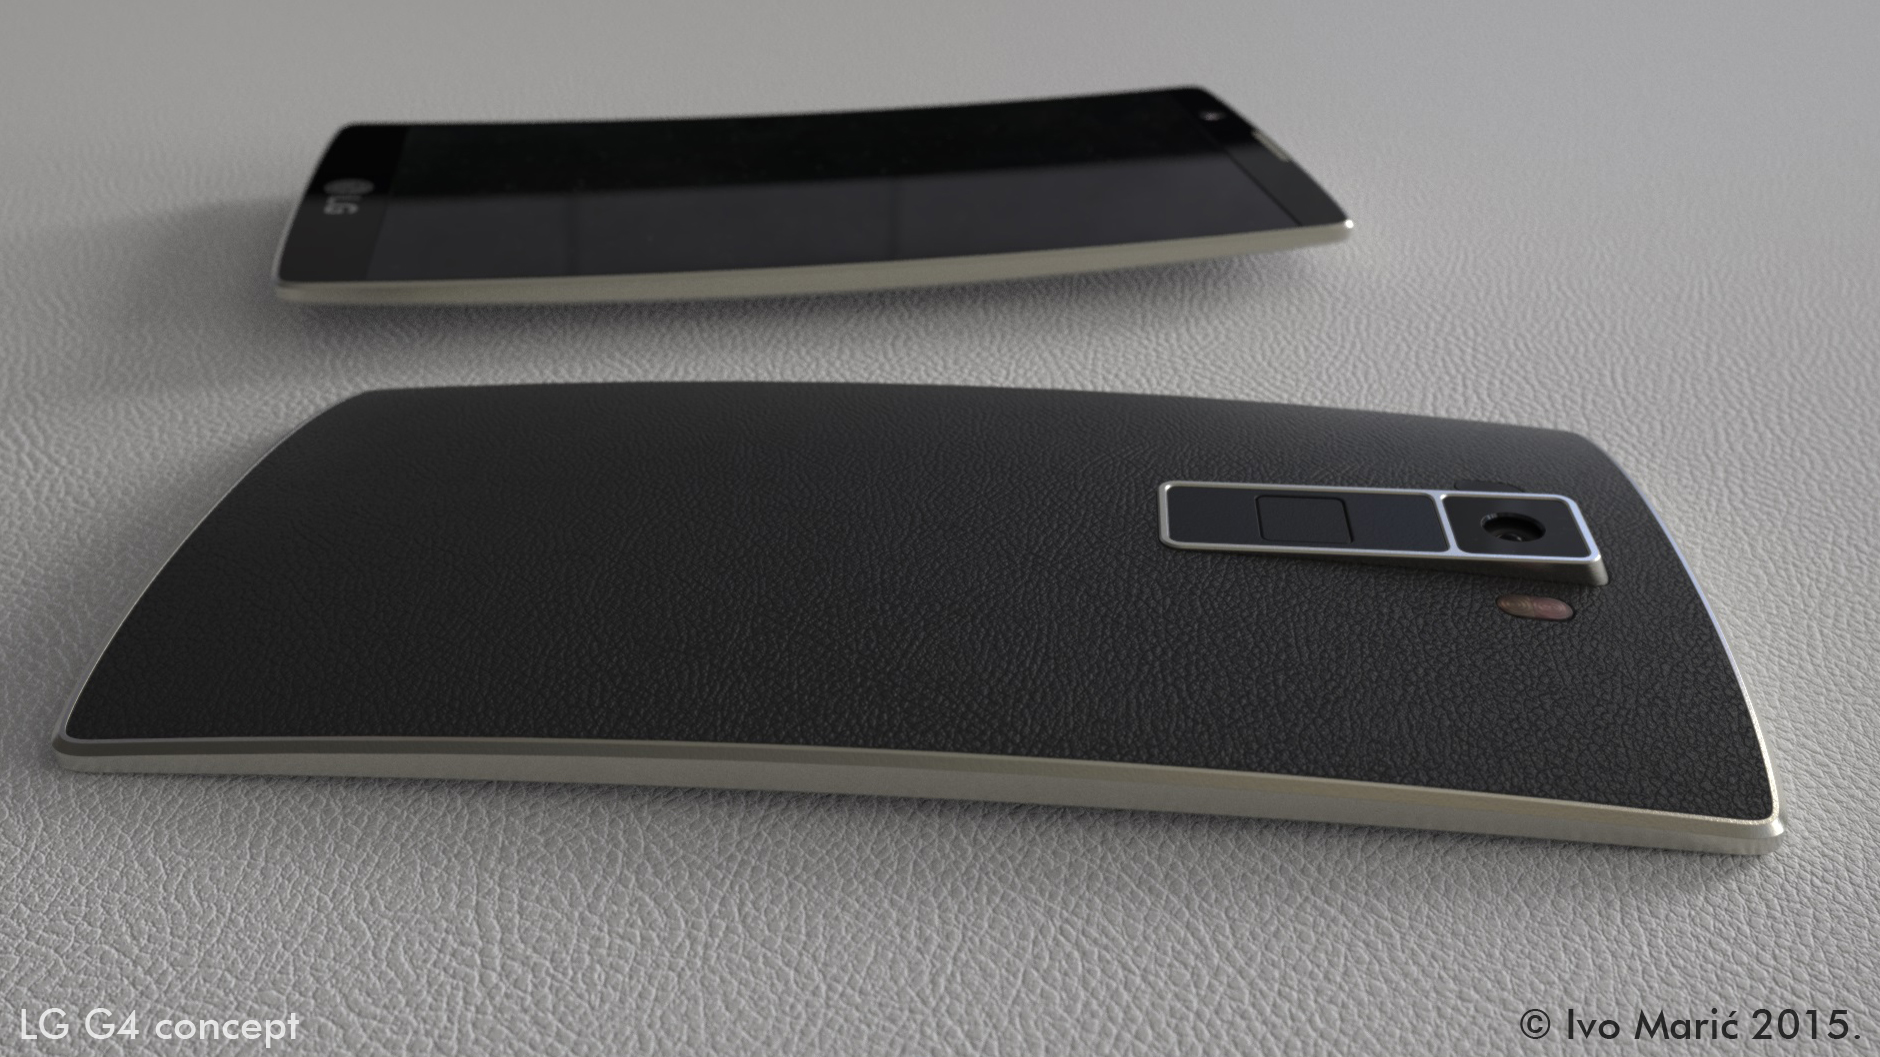 Best LG G4 Concept List - Curved LG G4